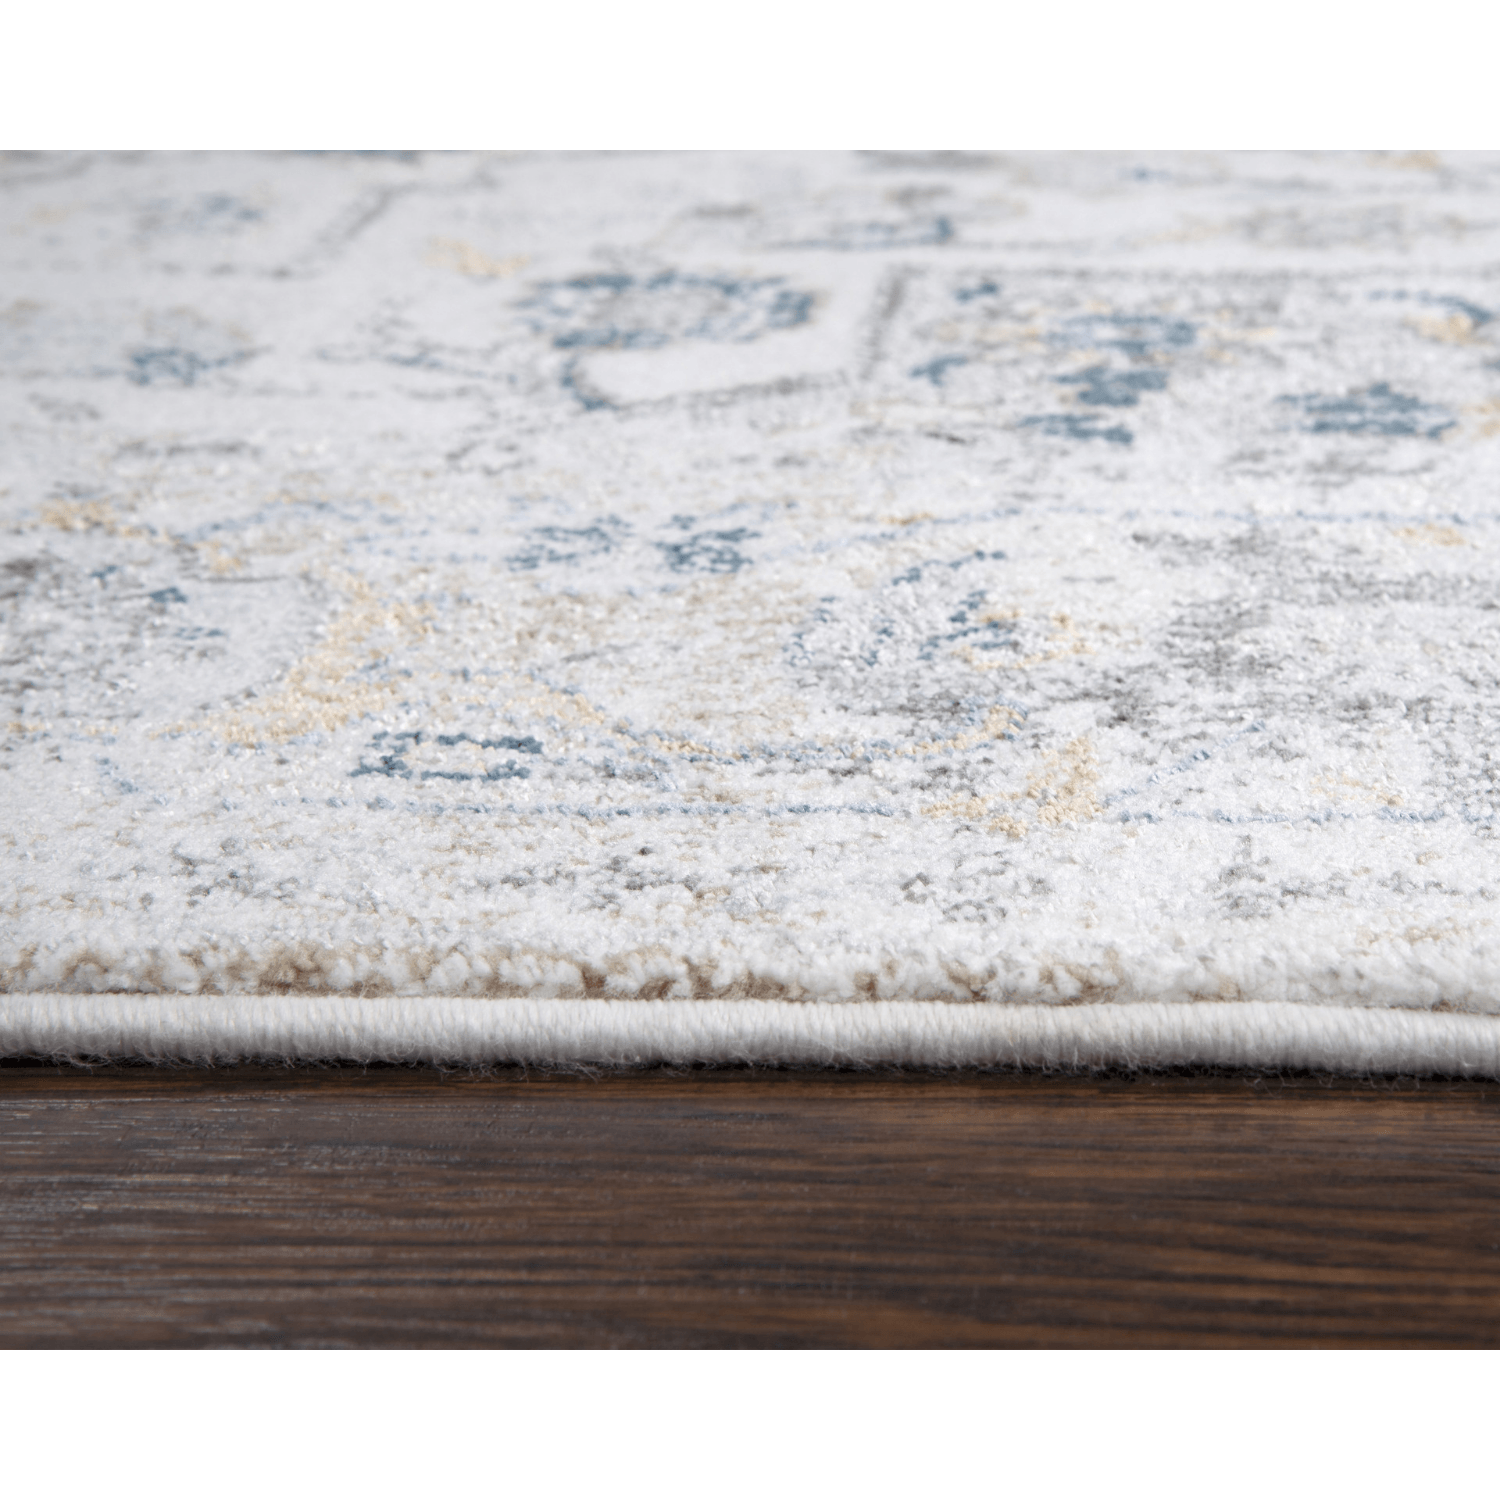 Eisley Gray and Blue Distressed Vintage Style Rug